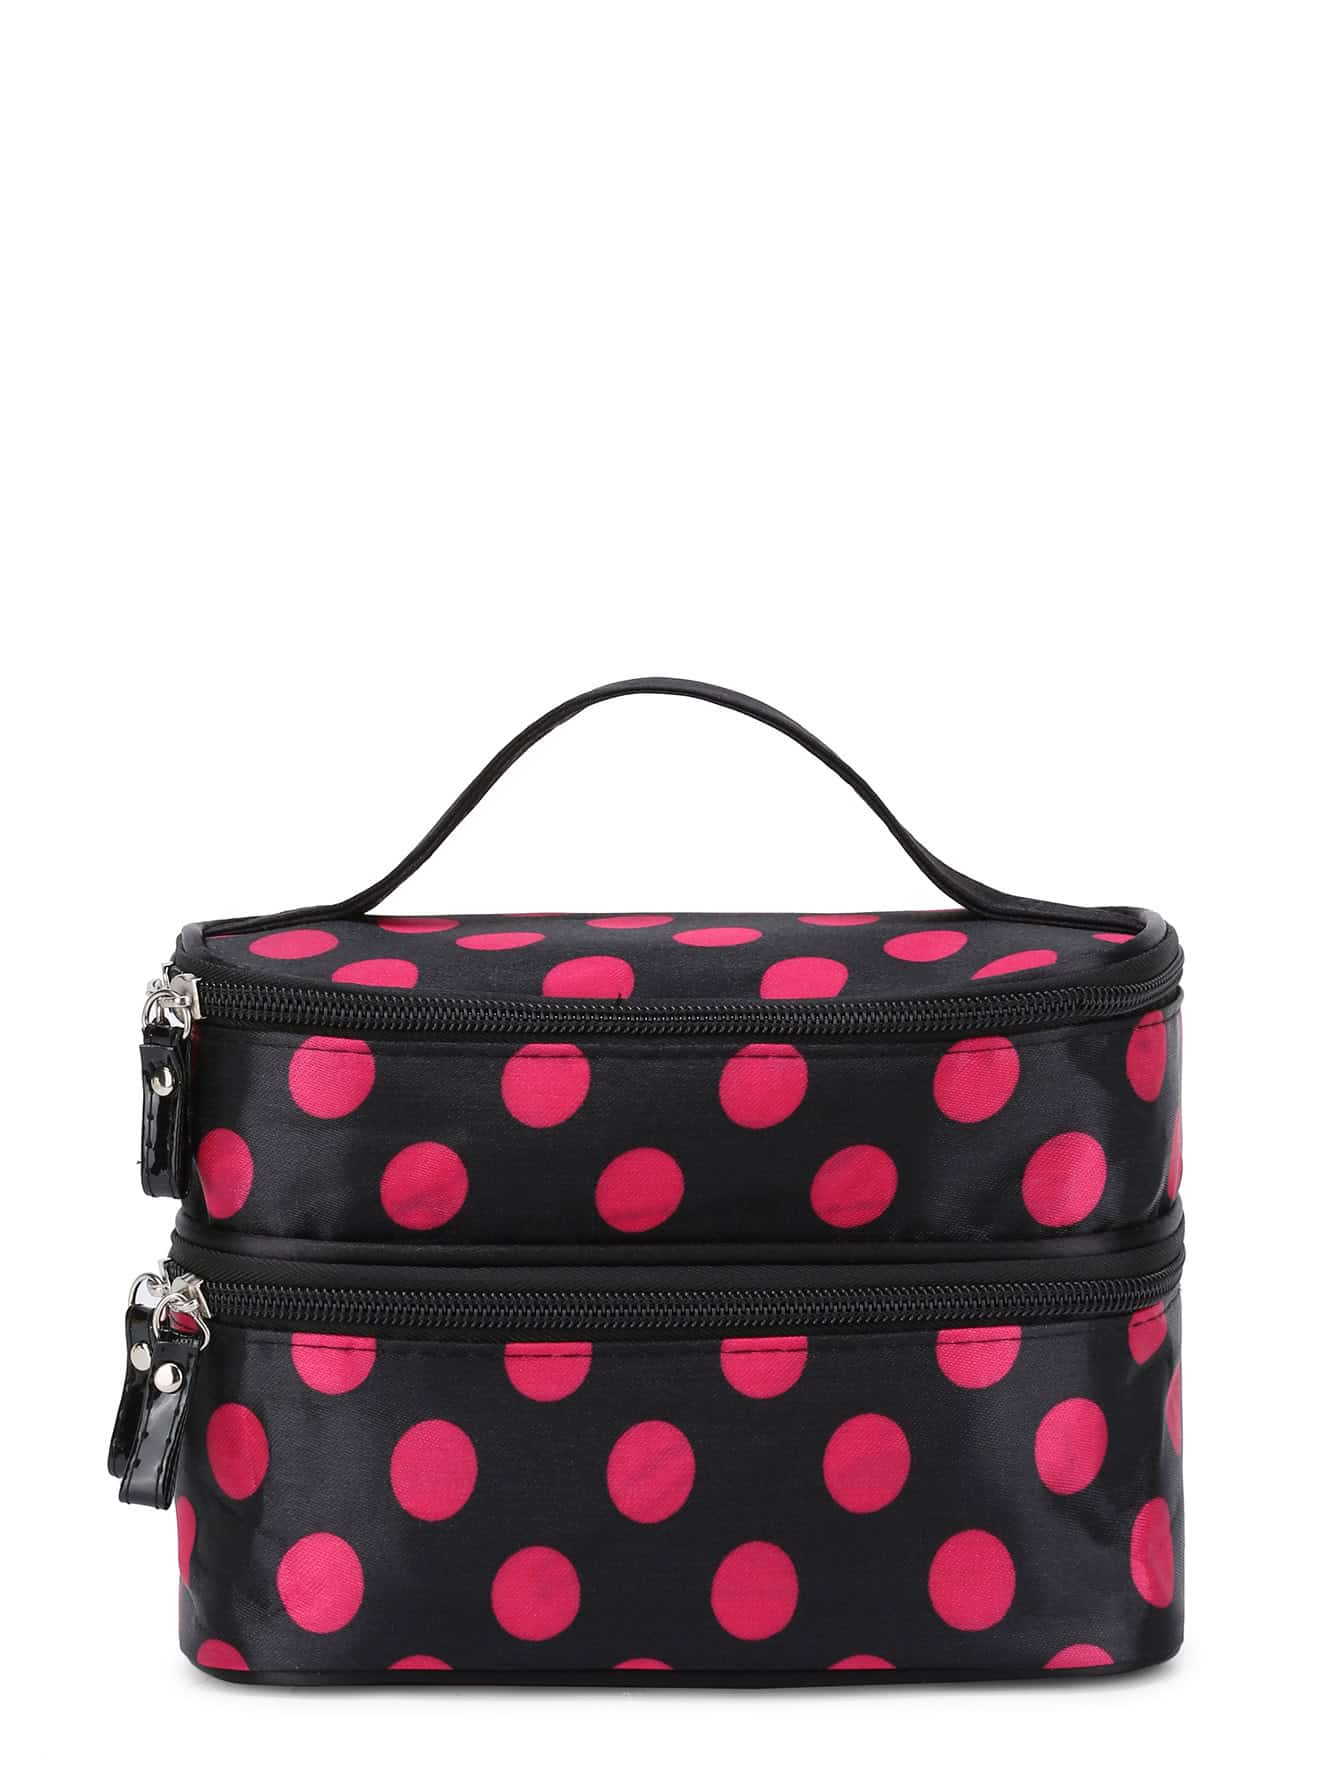 Polka Dot Double Layers Cosmetic Bag transer jasmine polka dot flip double zipper cosmetic bag 0213 drop shipping